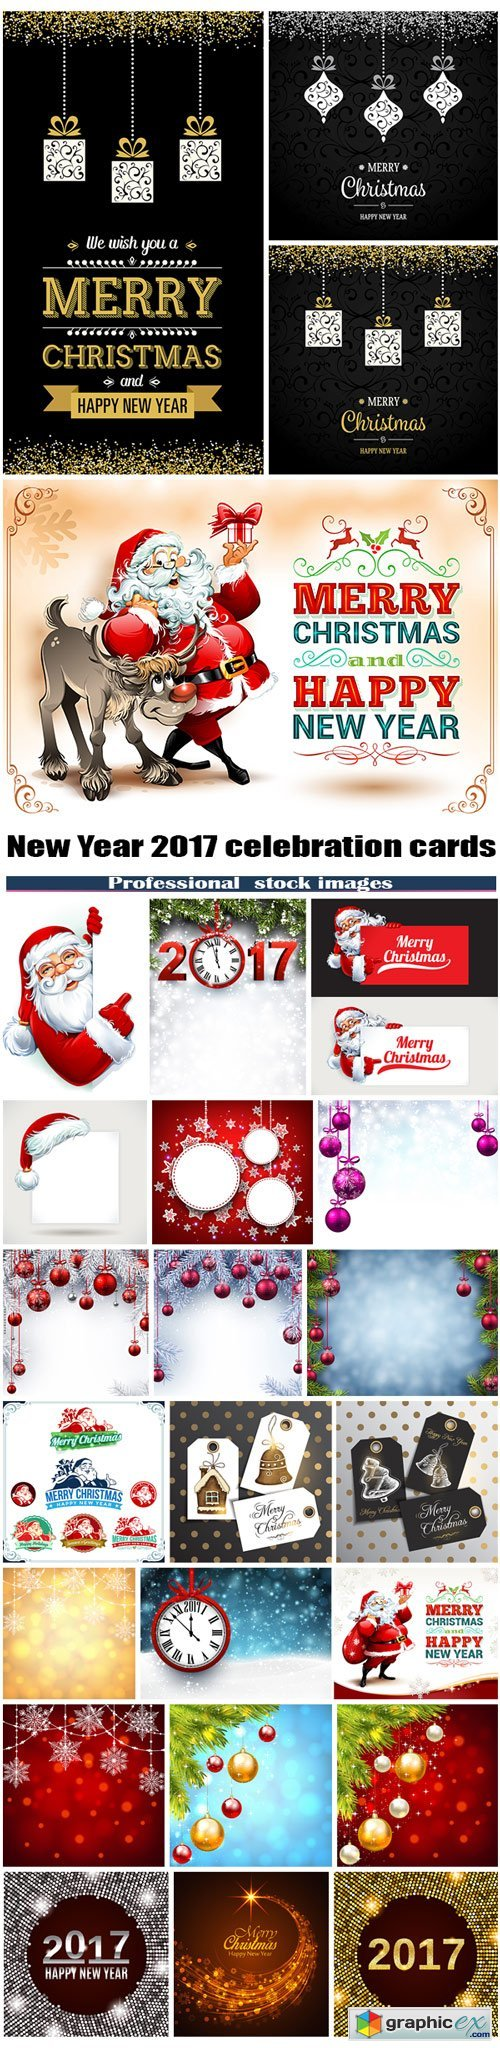 New Year 2017 celebration cards